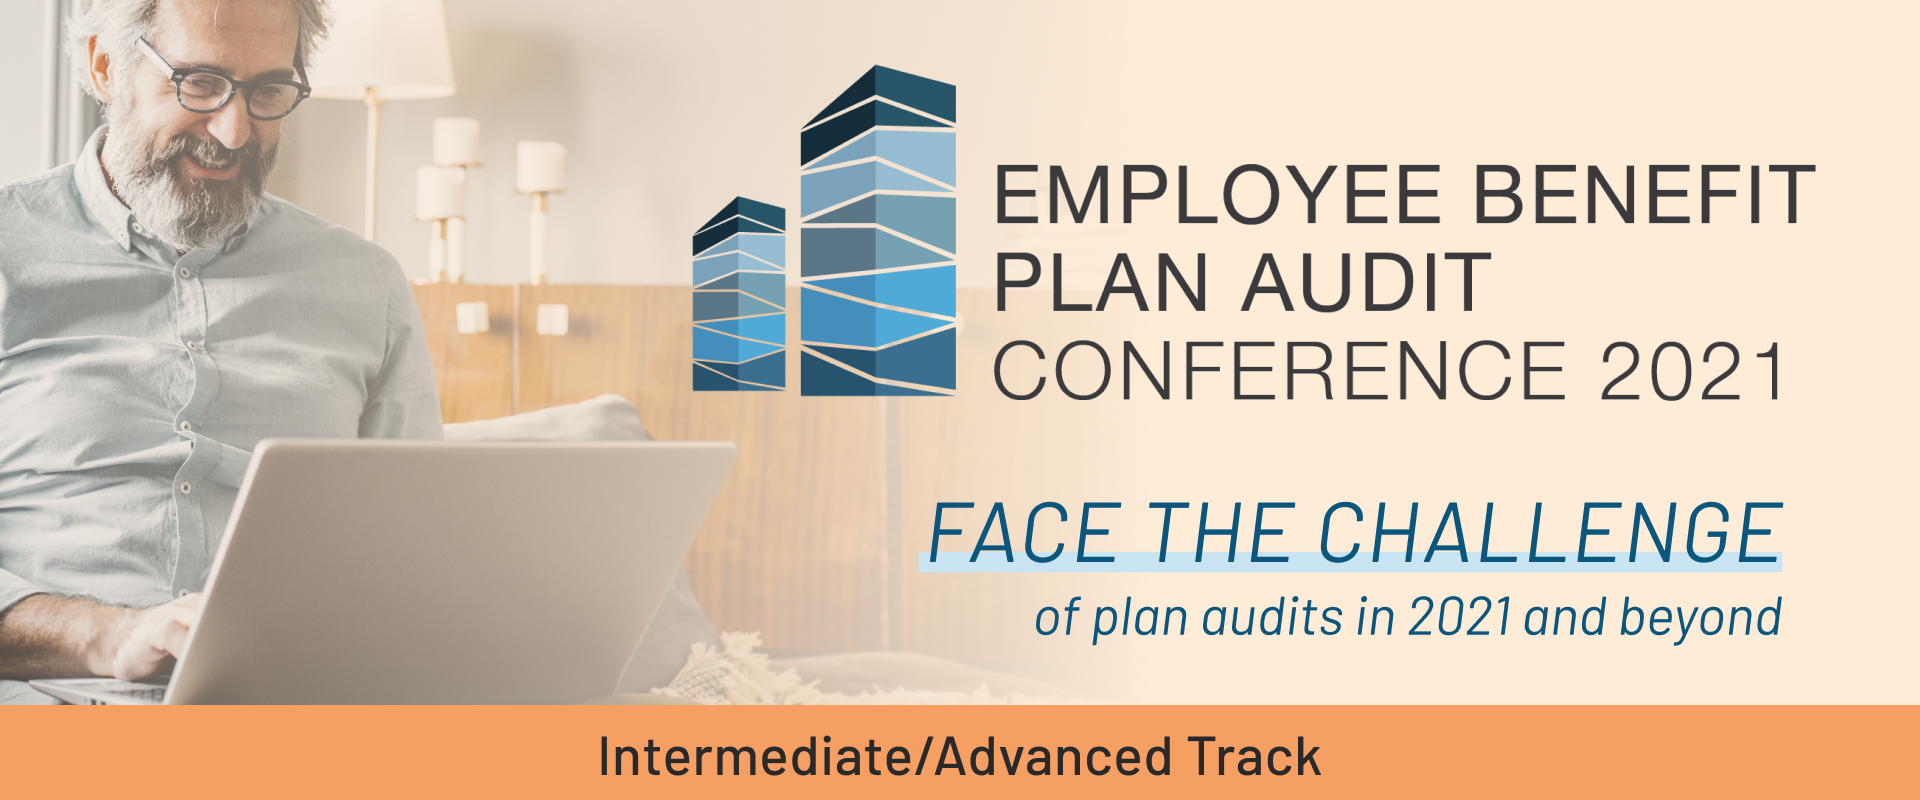 2021 EMPLOYEE BENEFIT PLAN AUDIT CONFERENCE (INTERMEDIATE/ADVANCED)